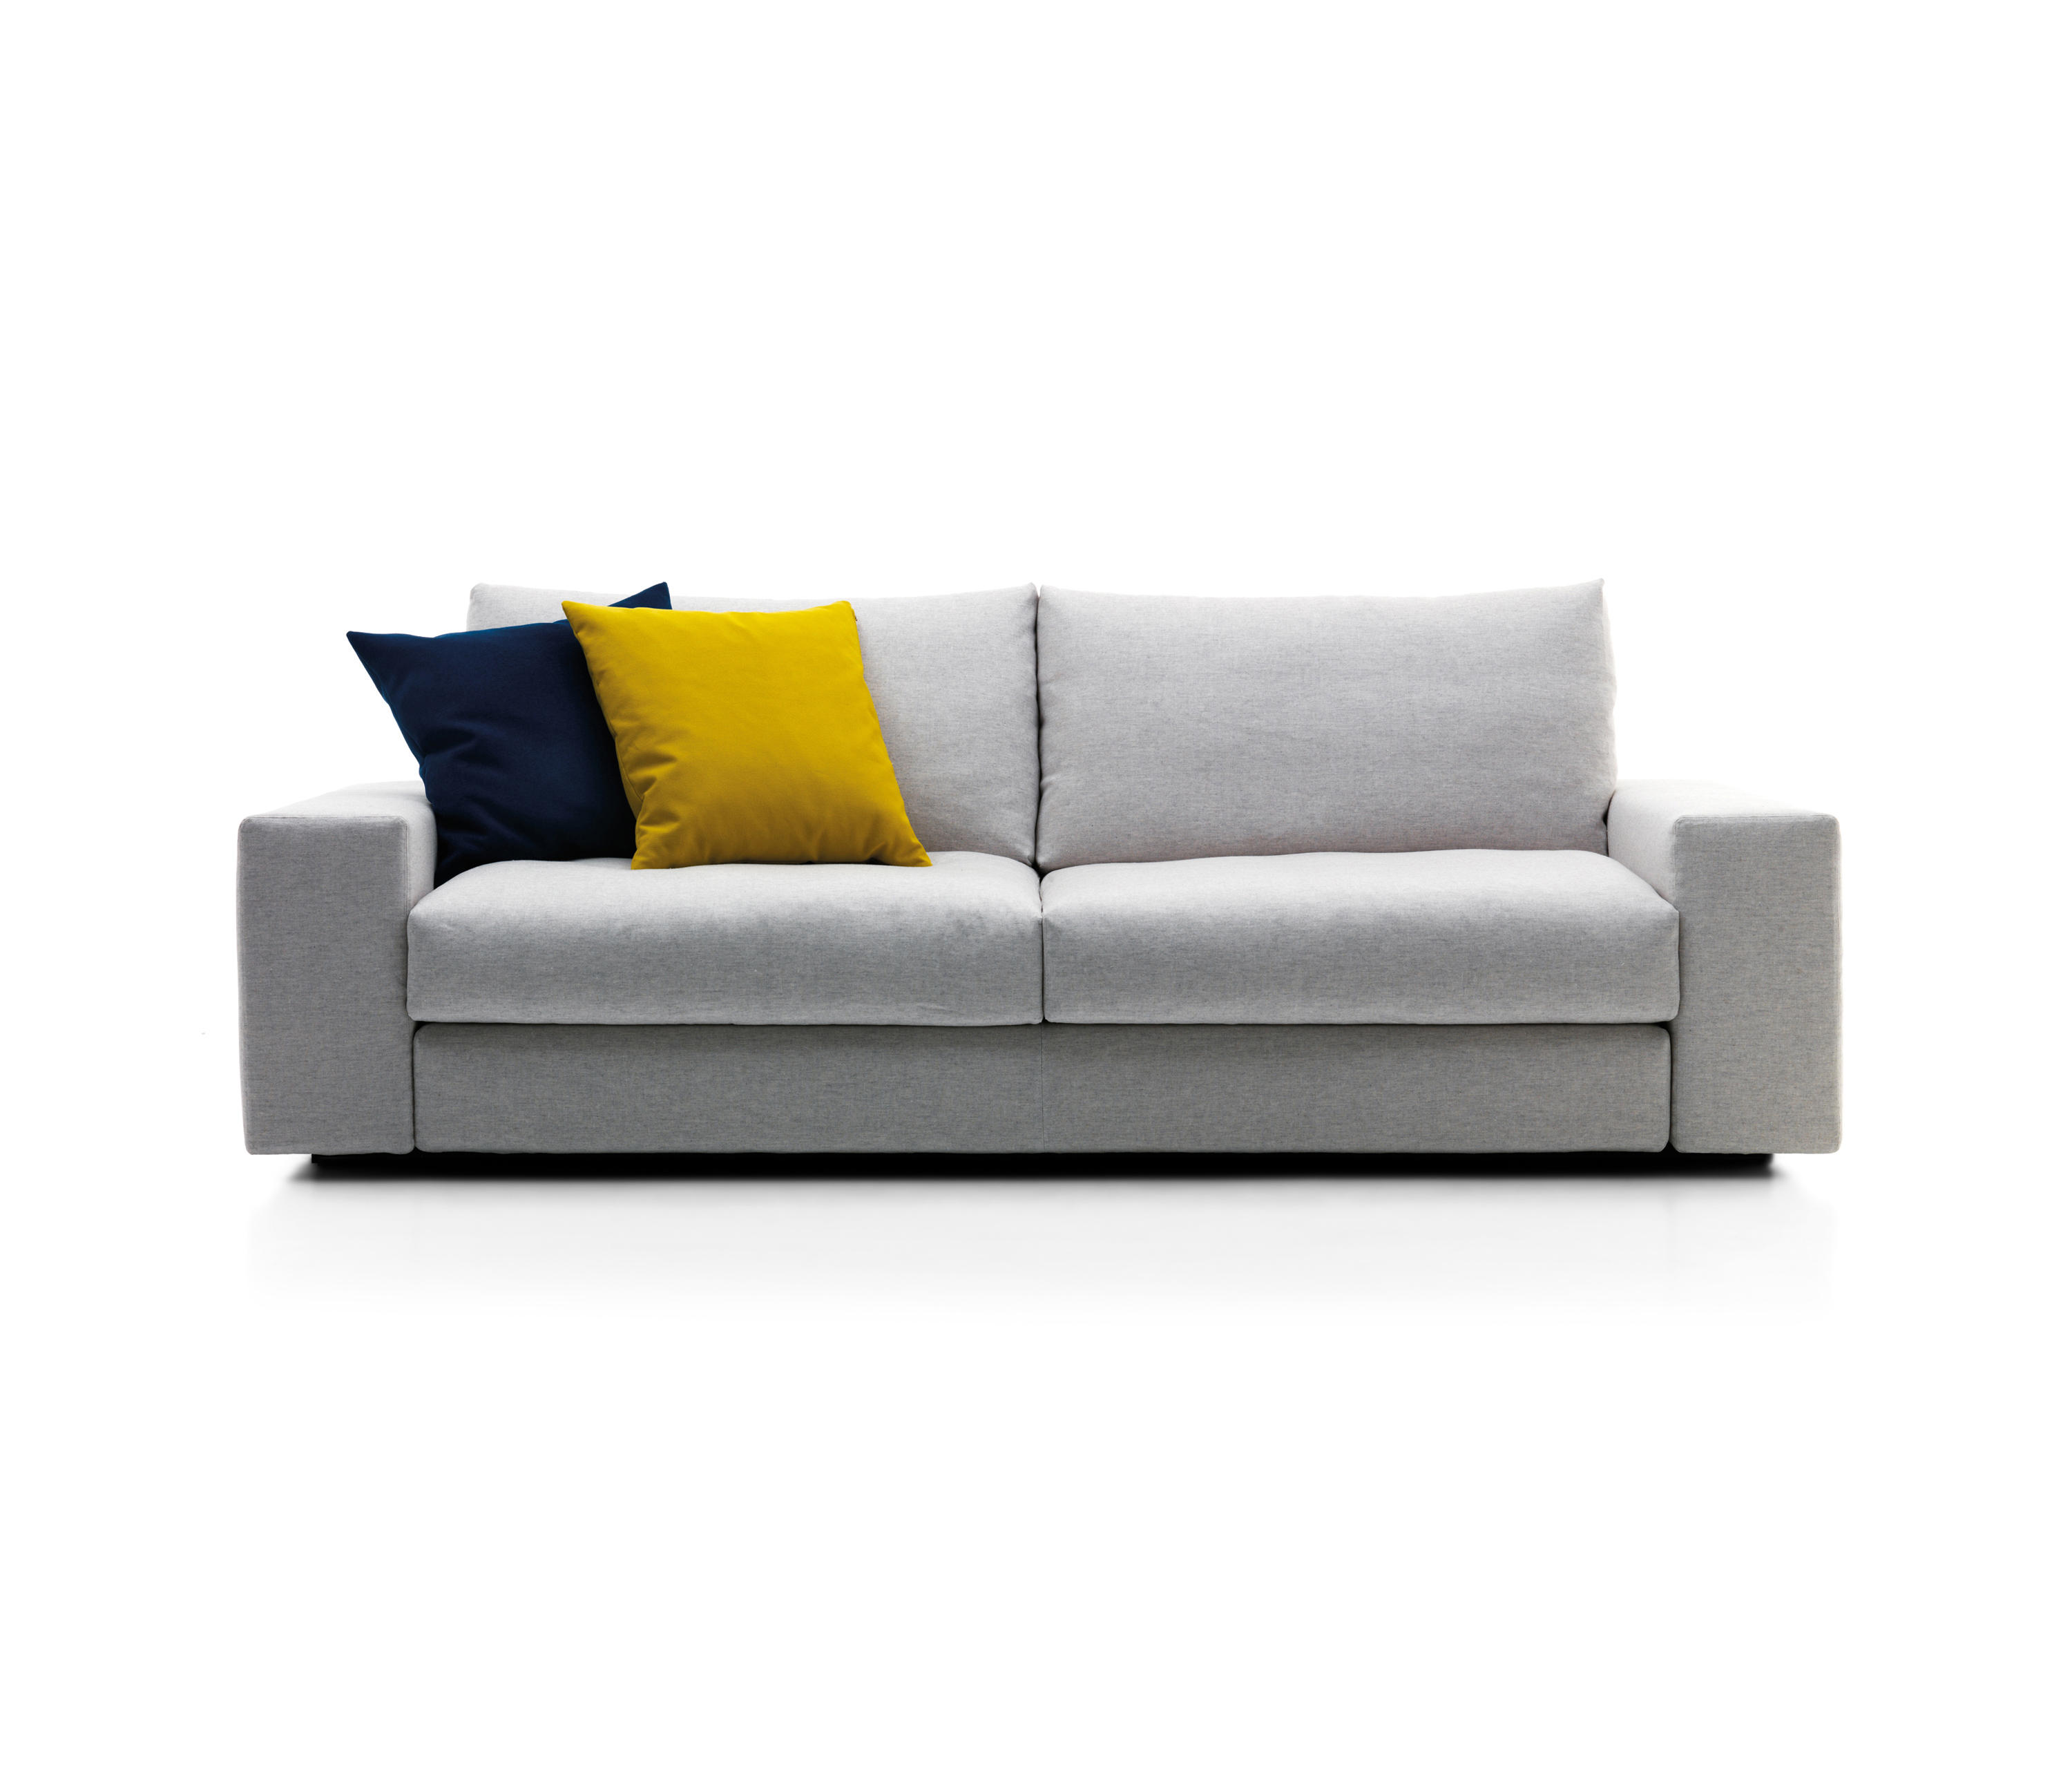 chelsea square sofa home sofas the 25 best u shaped ideas on pinterest